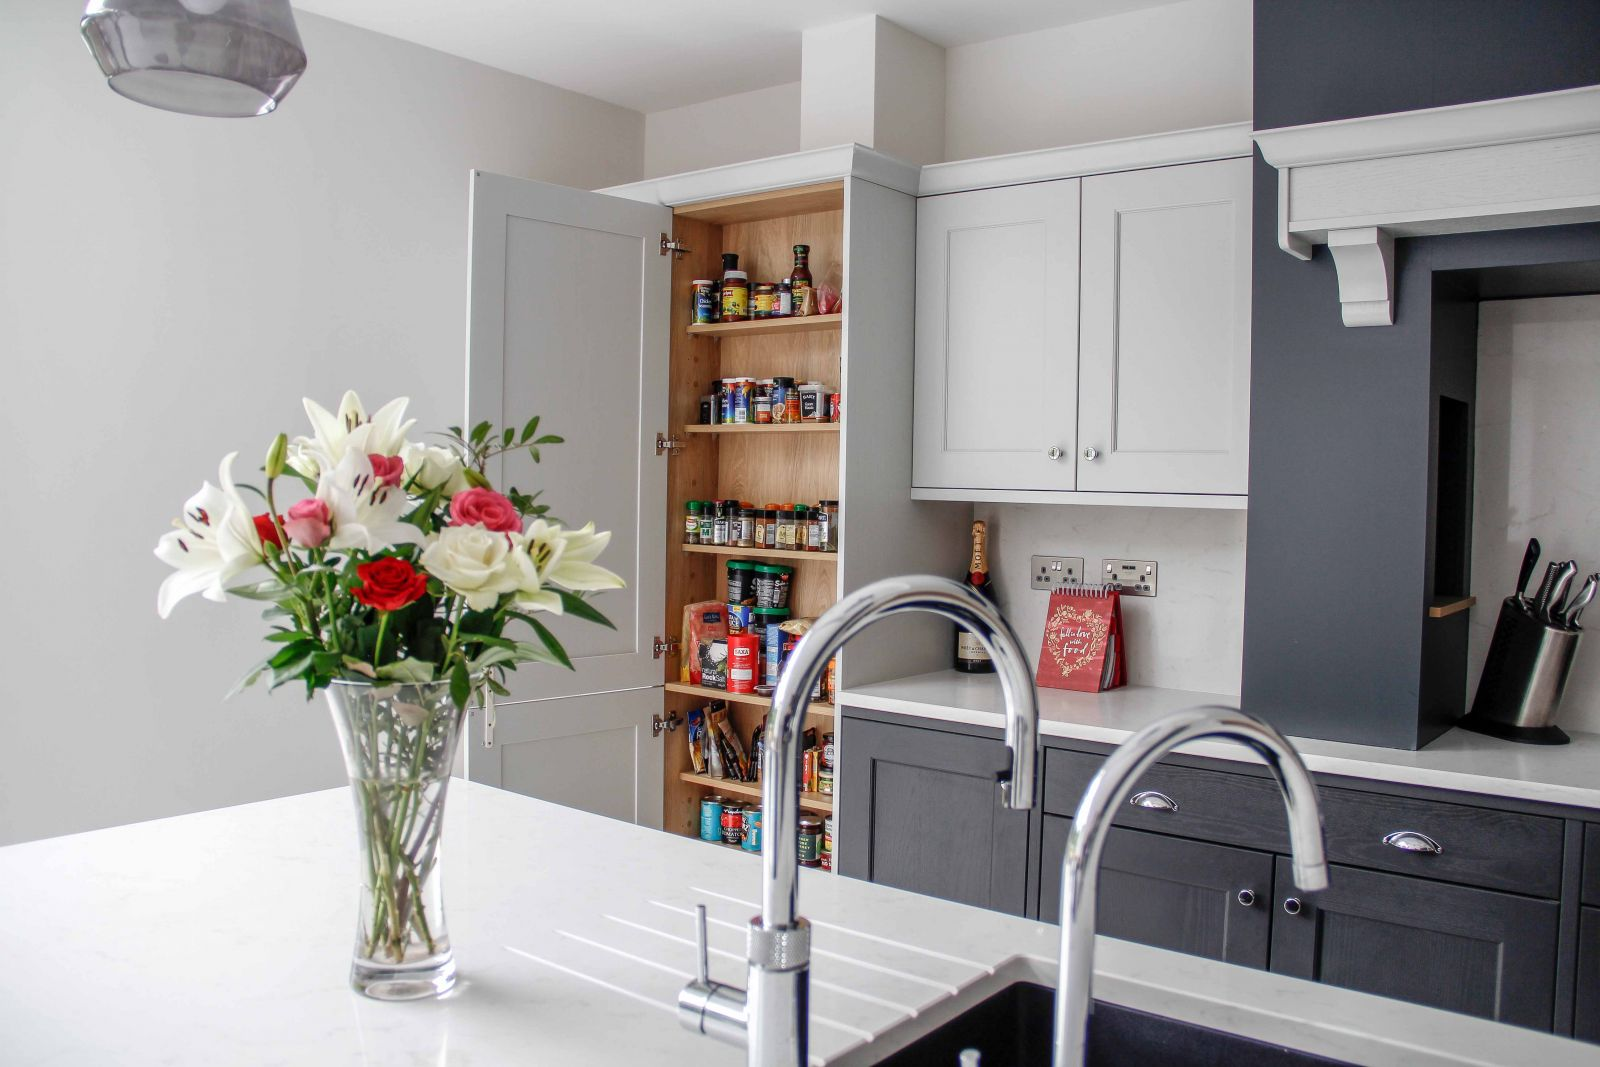 Classic Shaker Kitchen in Grey and White with Kitchen Storage by Sigma 3 Kitchens